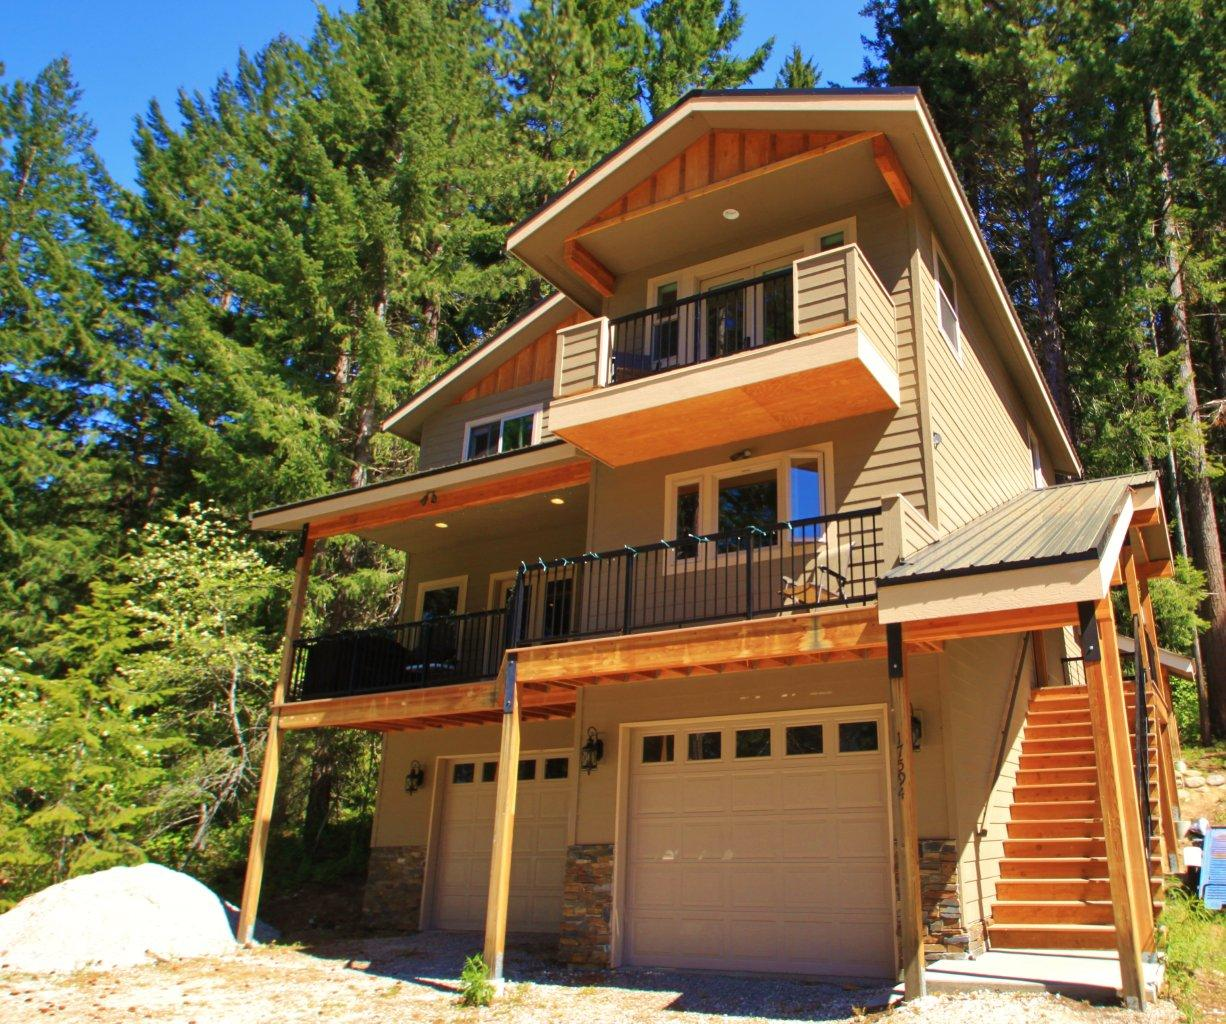 to for on cabin states in log stunning river cabins washington leavenworth kits rent united home idyllic state sale